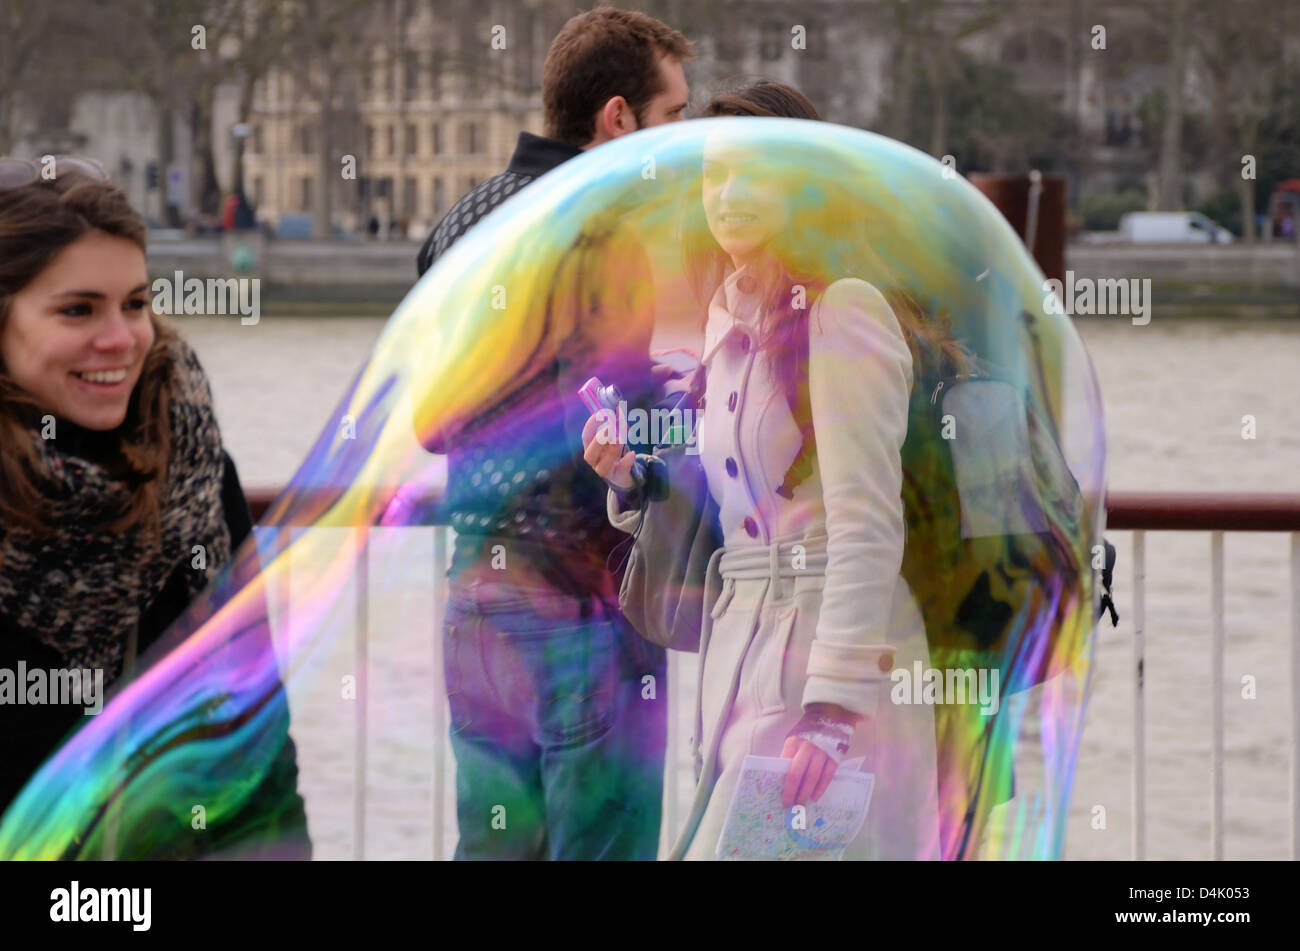 A large bubble creates effects around female walking by whilst another girl looks on happily - Stock Image